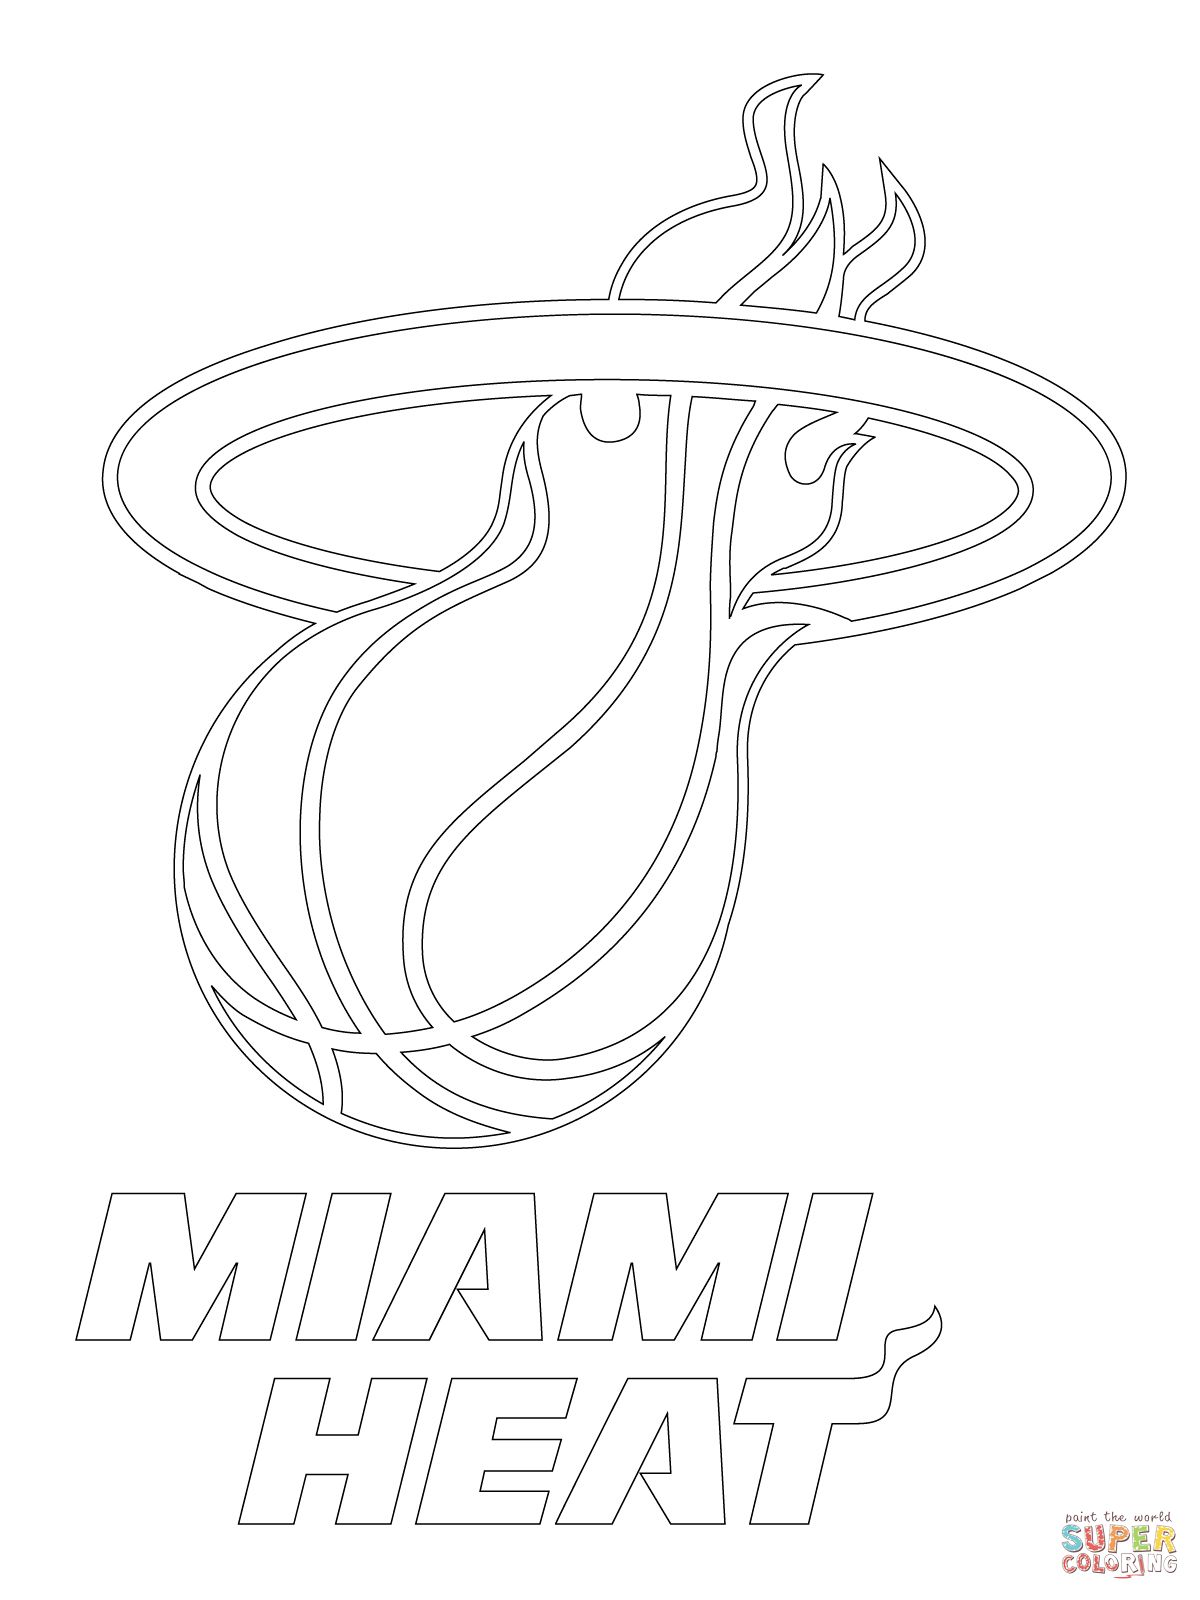 Miami Heat Logo Coloring Page Supercoloring Com Miami Heat Logo